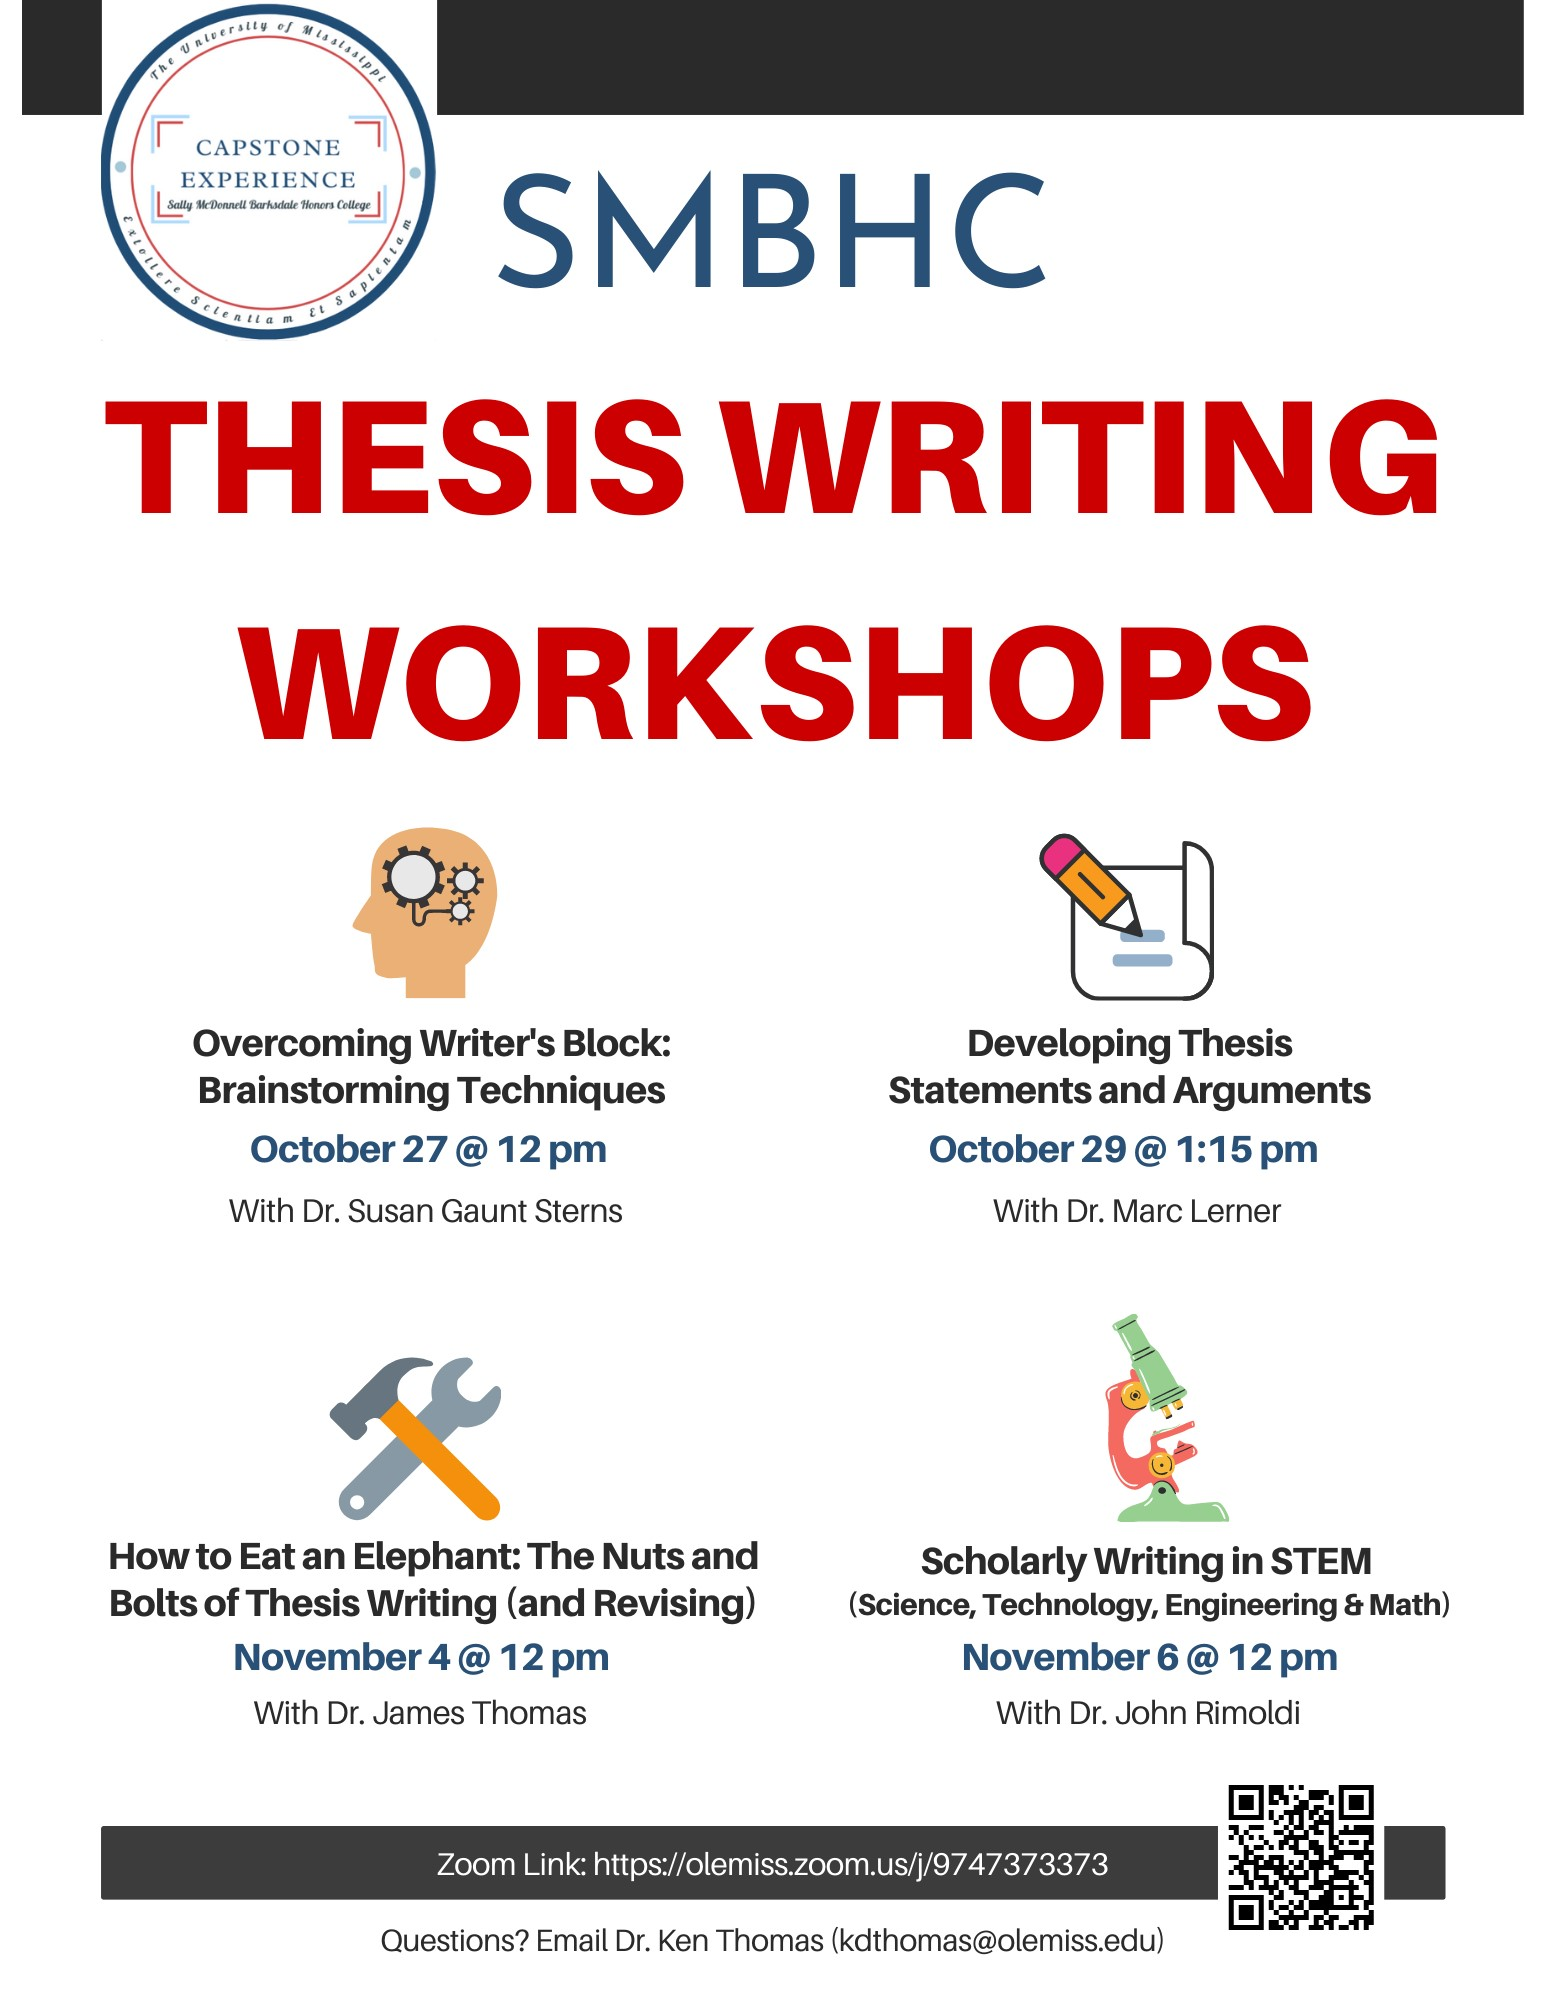 Thesis Writing Workshop with Dr. Susan Gaunt Sterns